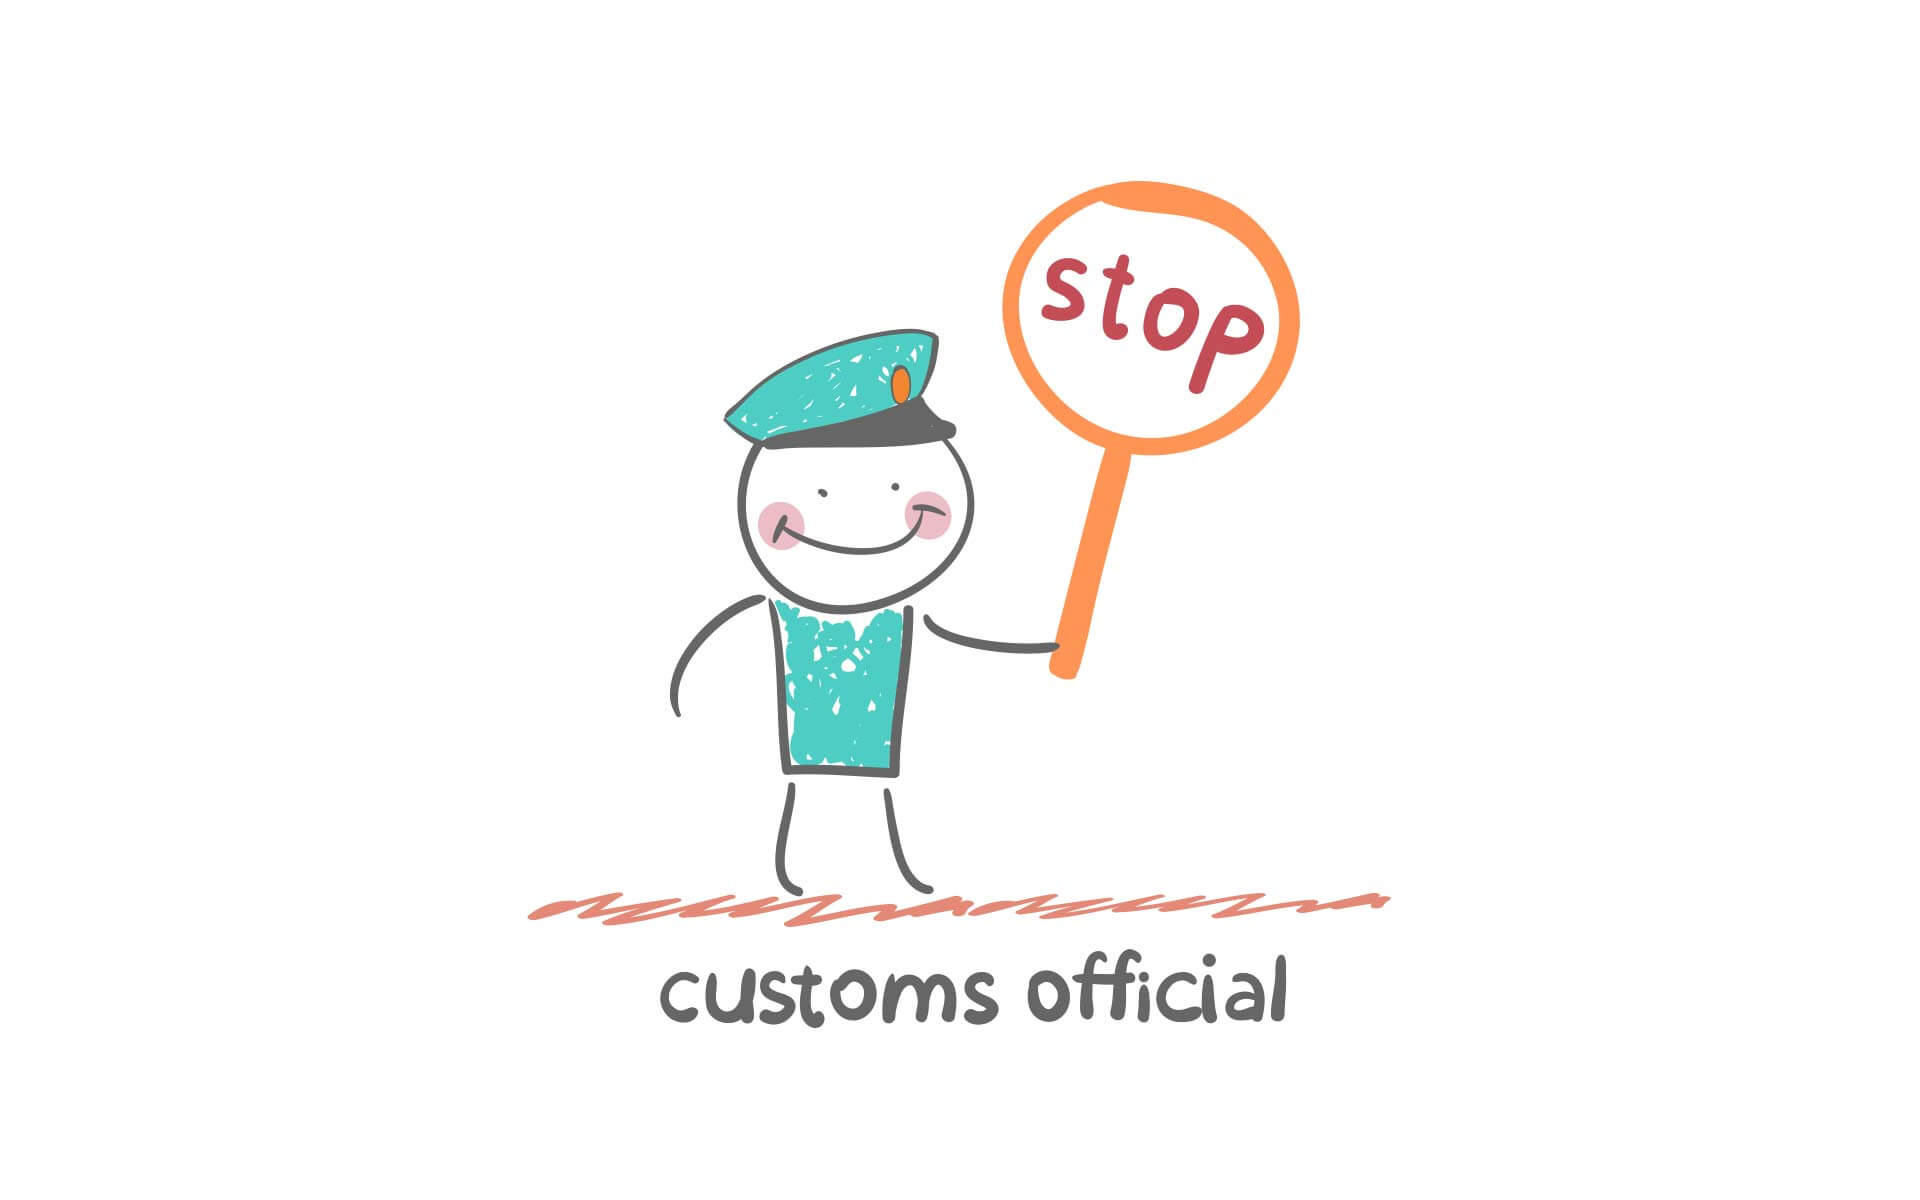 Stop, custom official